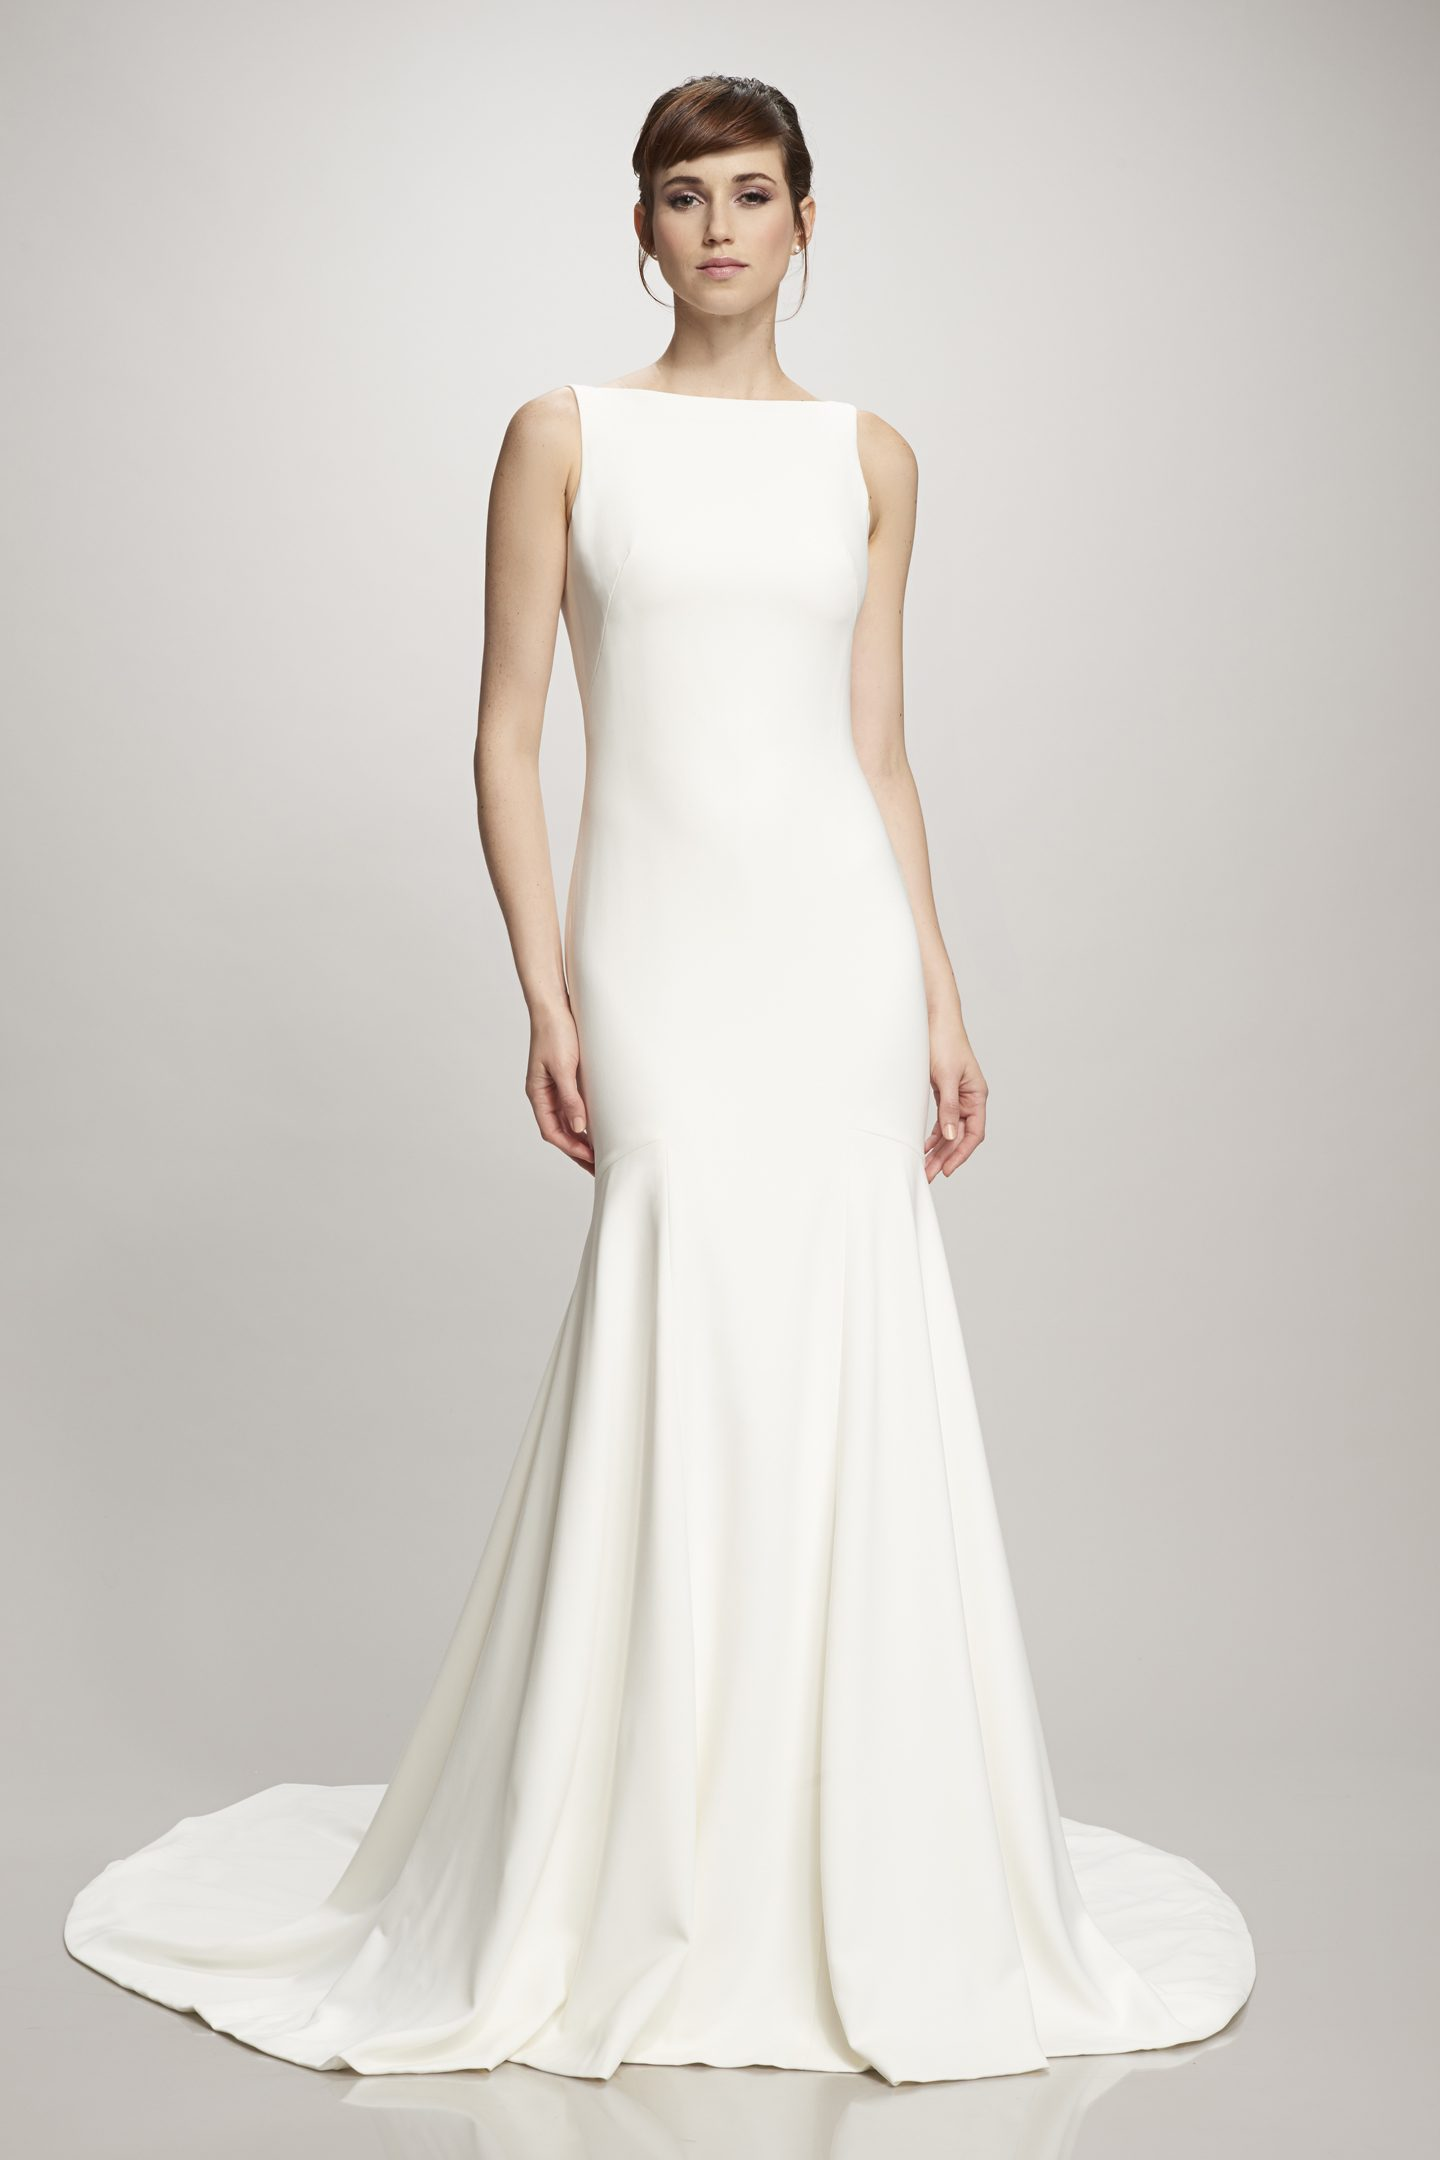 Devon - Theia Couture available at Maggie Louise Bridal